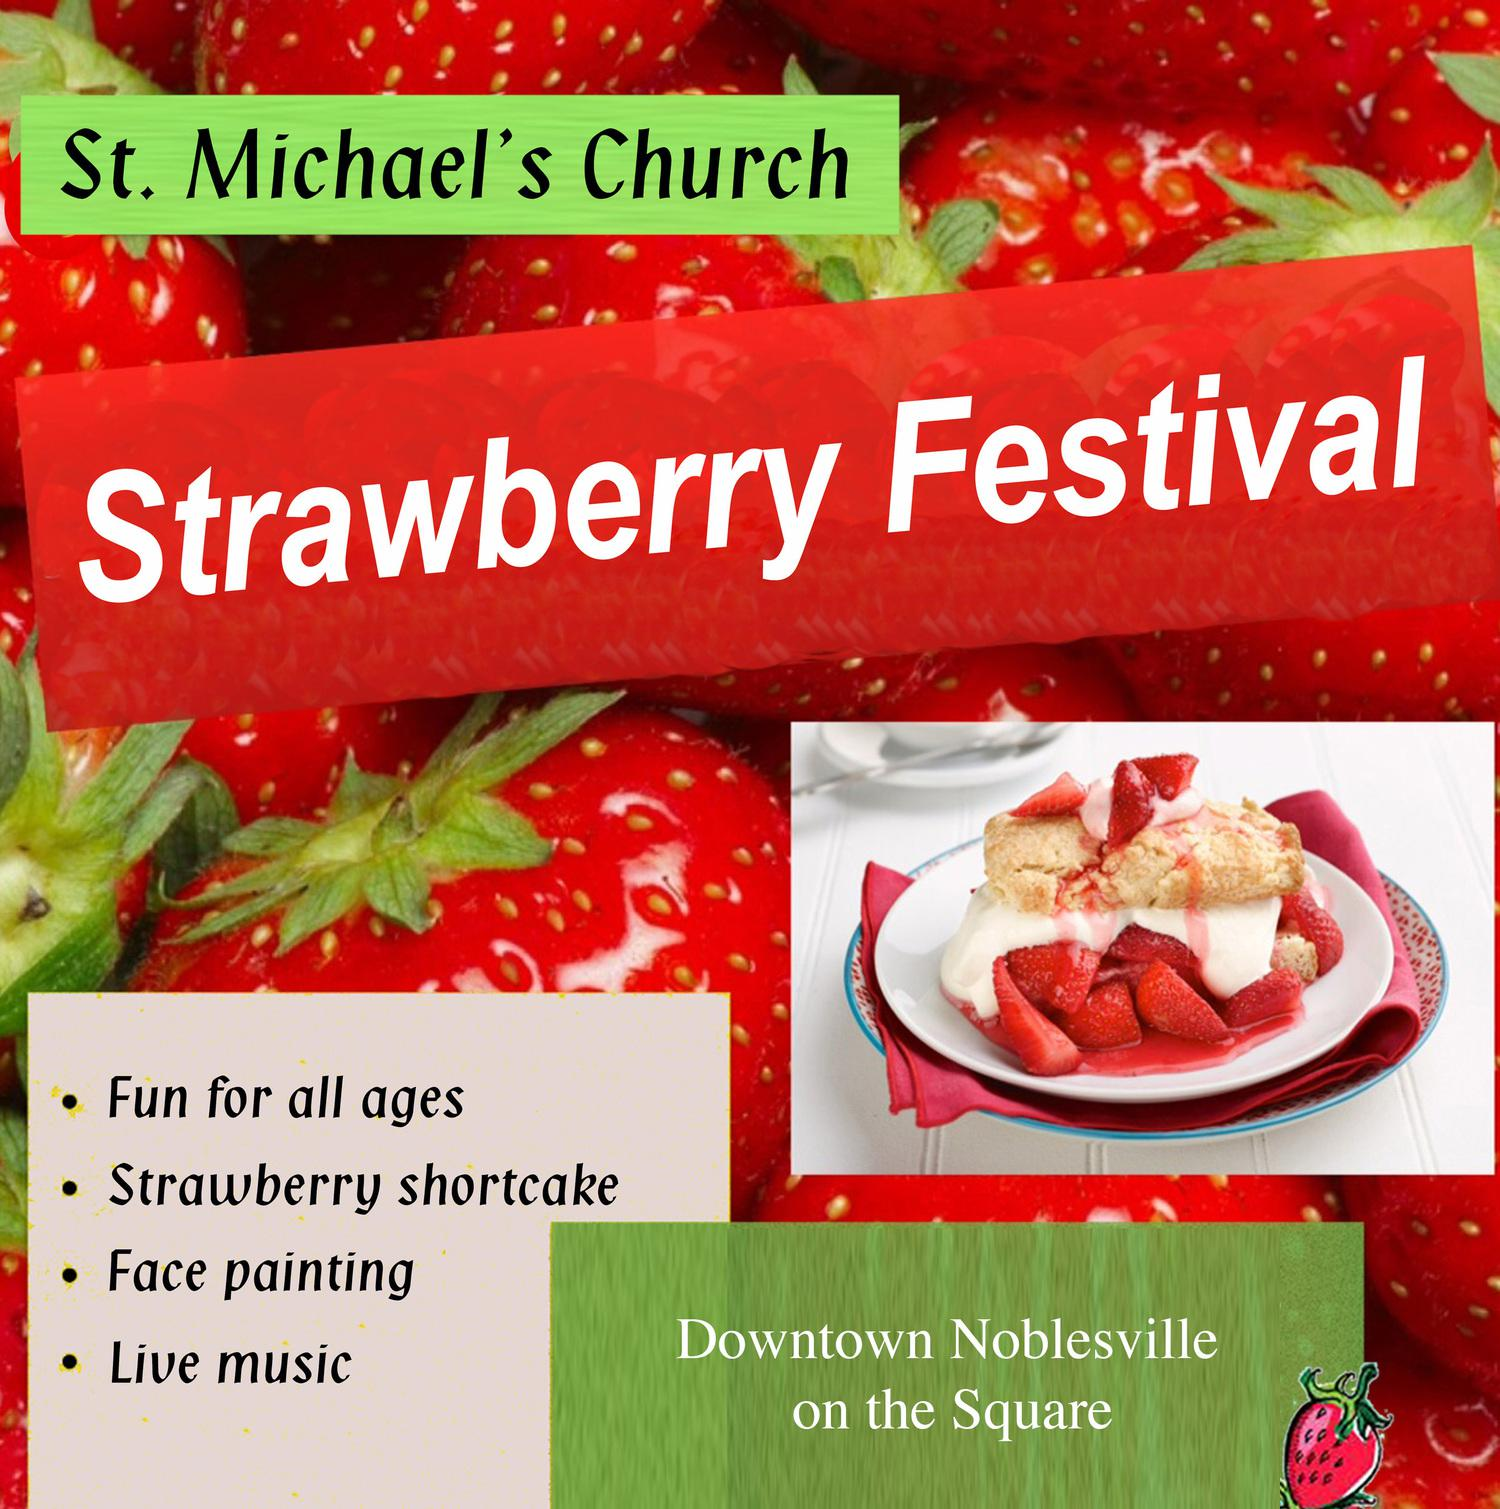 Save the date - Strawberry Festival coming in JUNE to Noblesville!